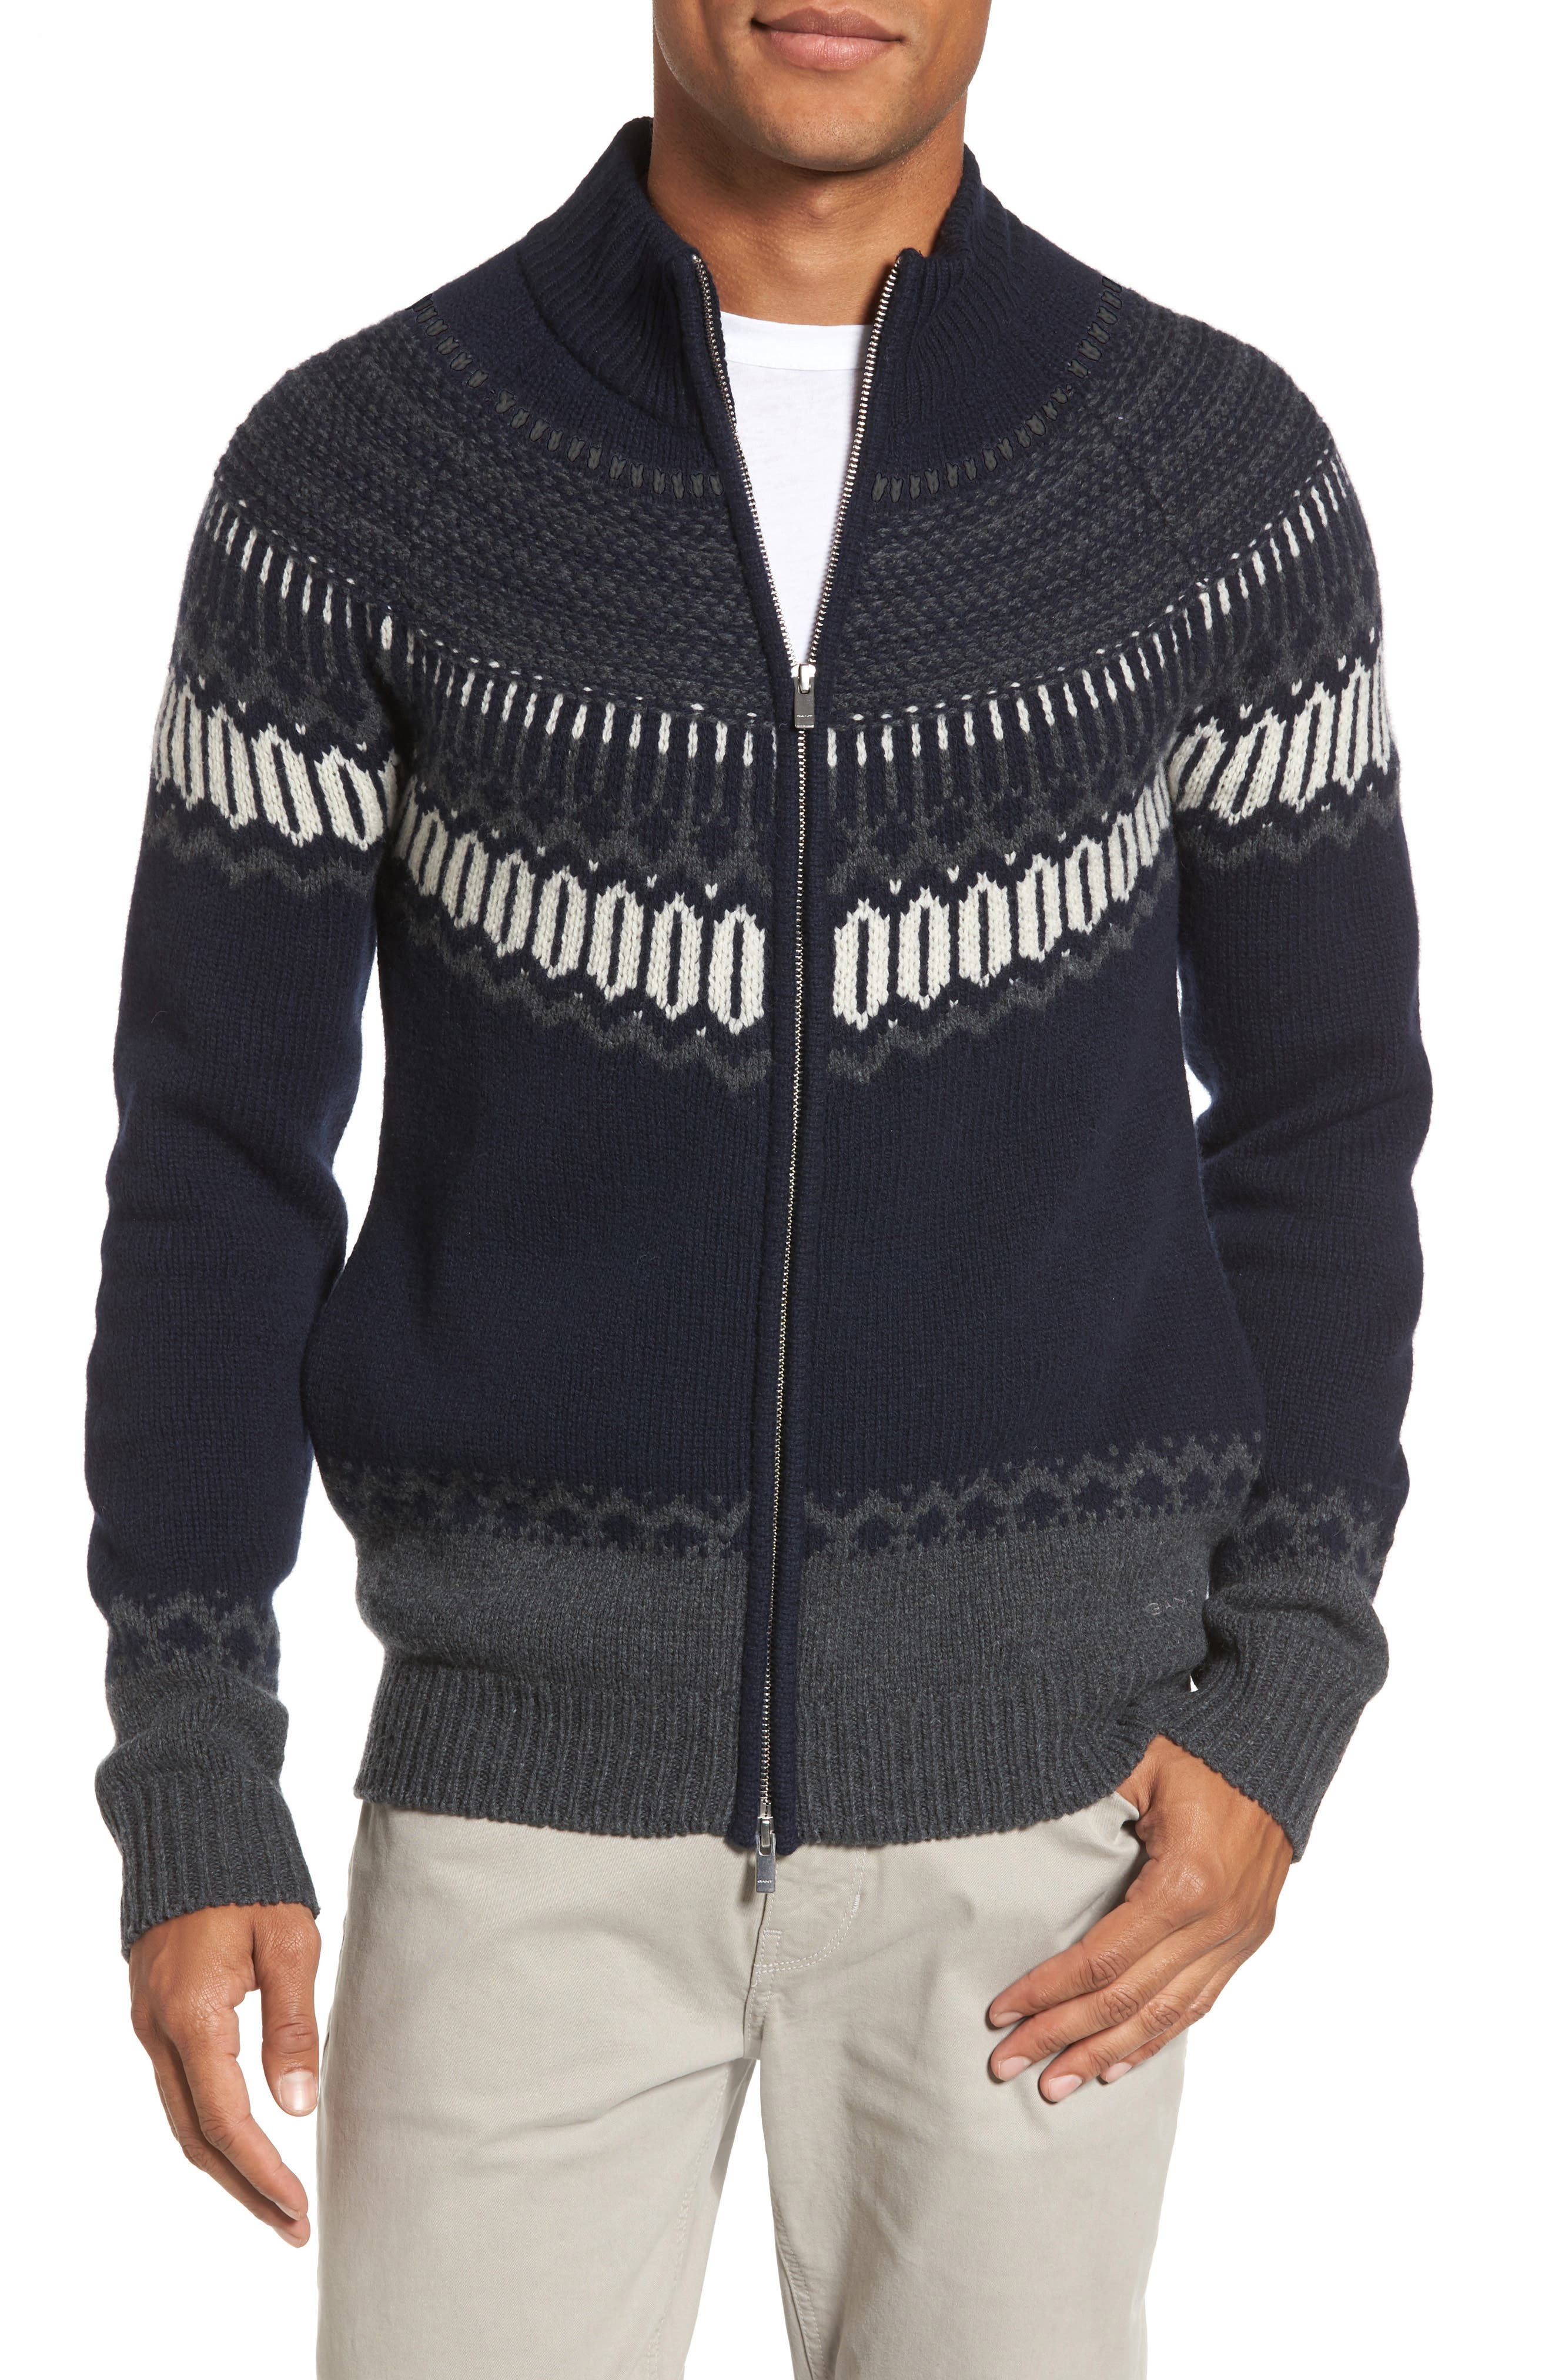 02 Lambswool & Cashmere Fair Isle Zip Front Cardigan,                         Main,                         color, Navy